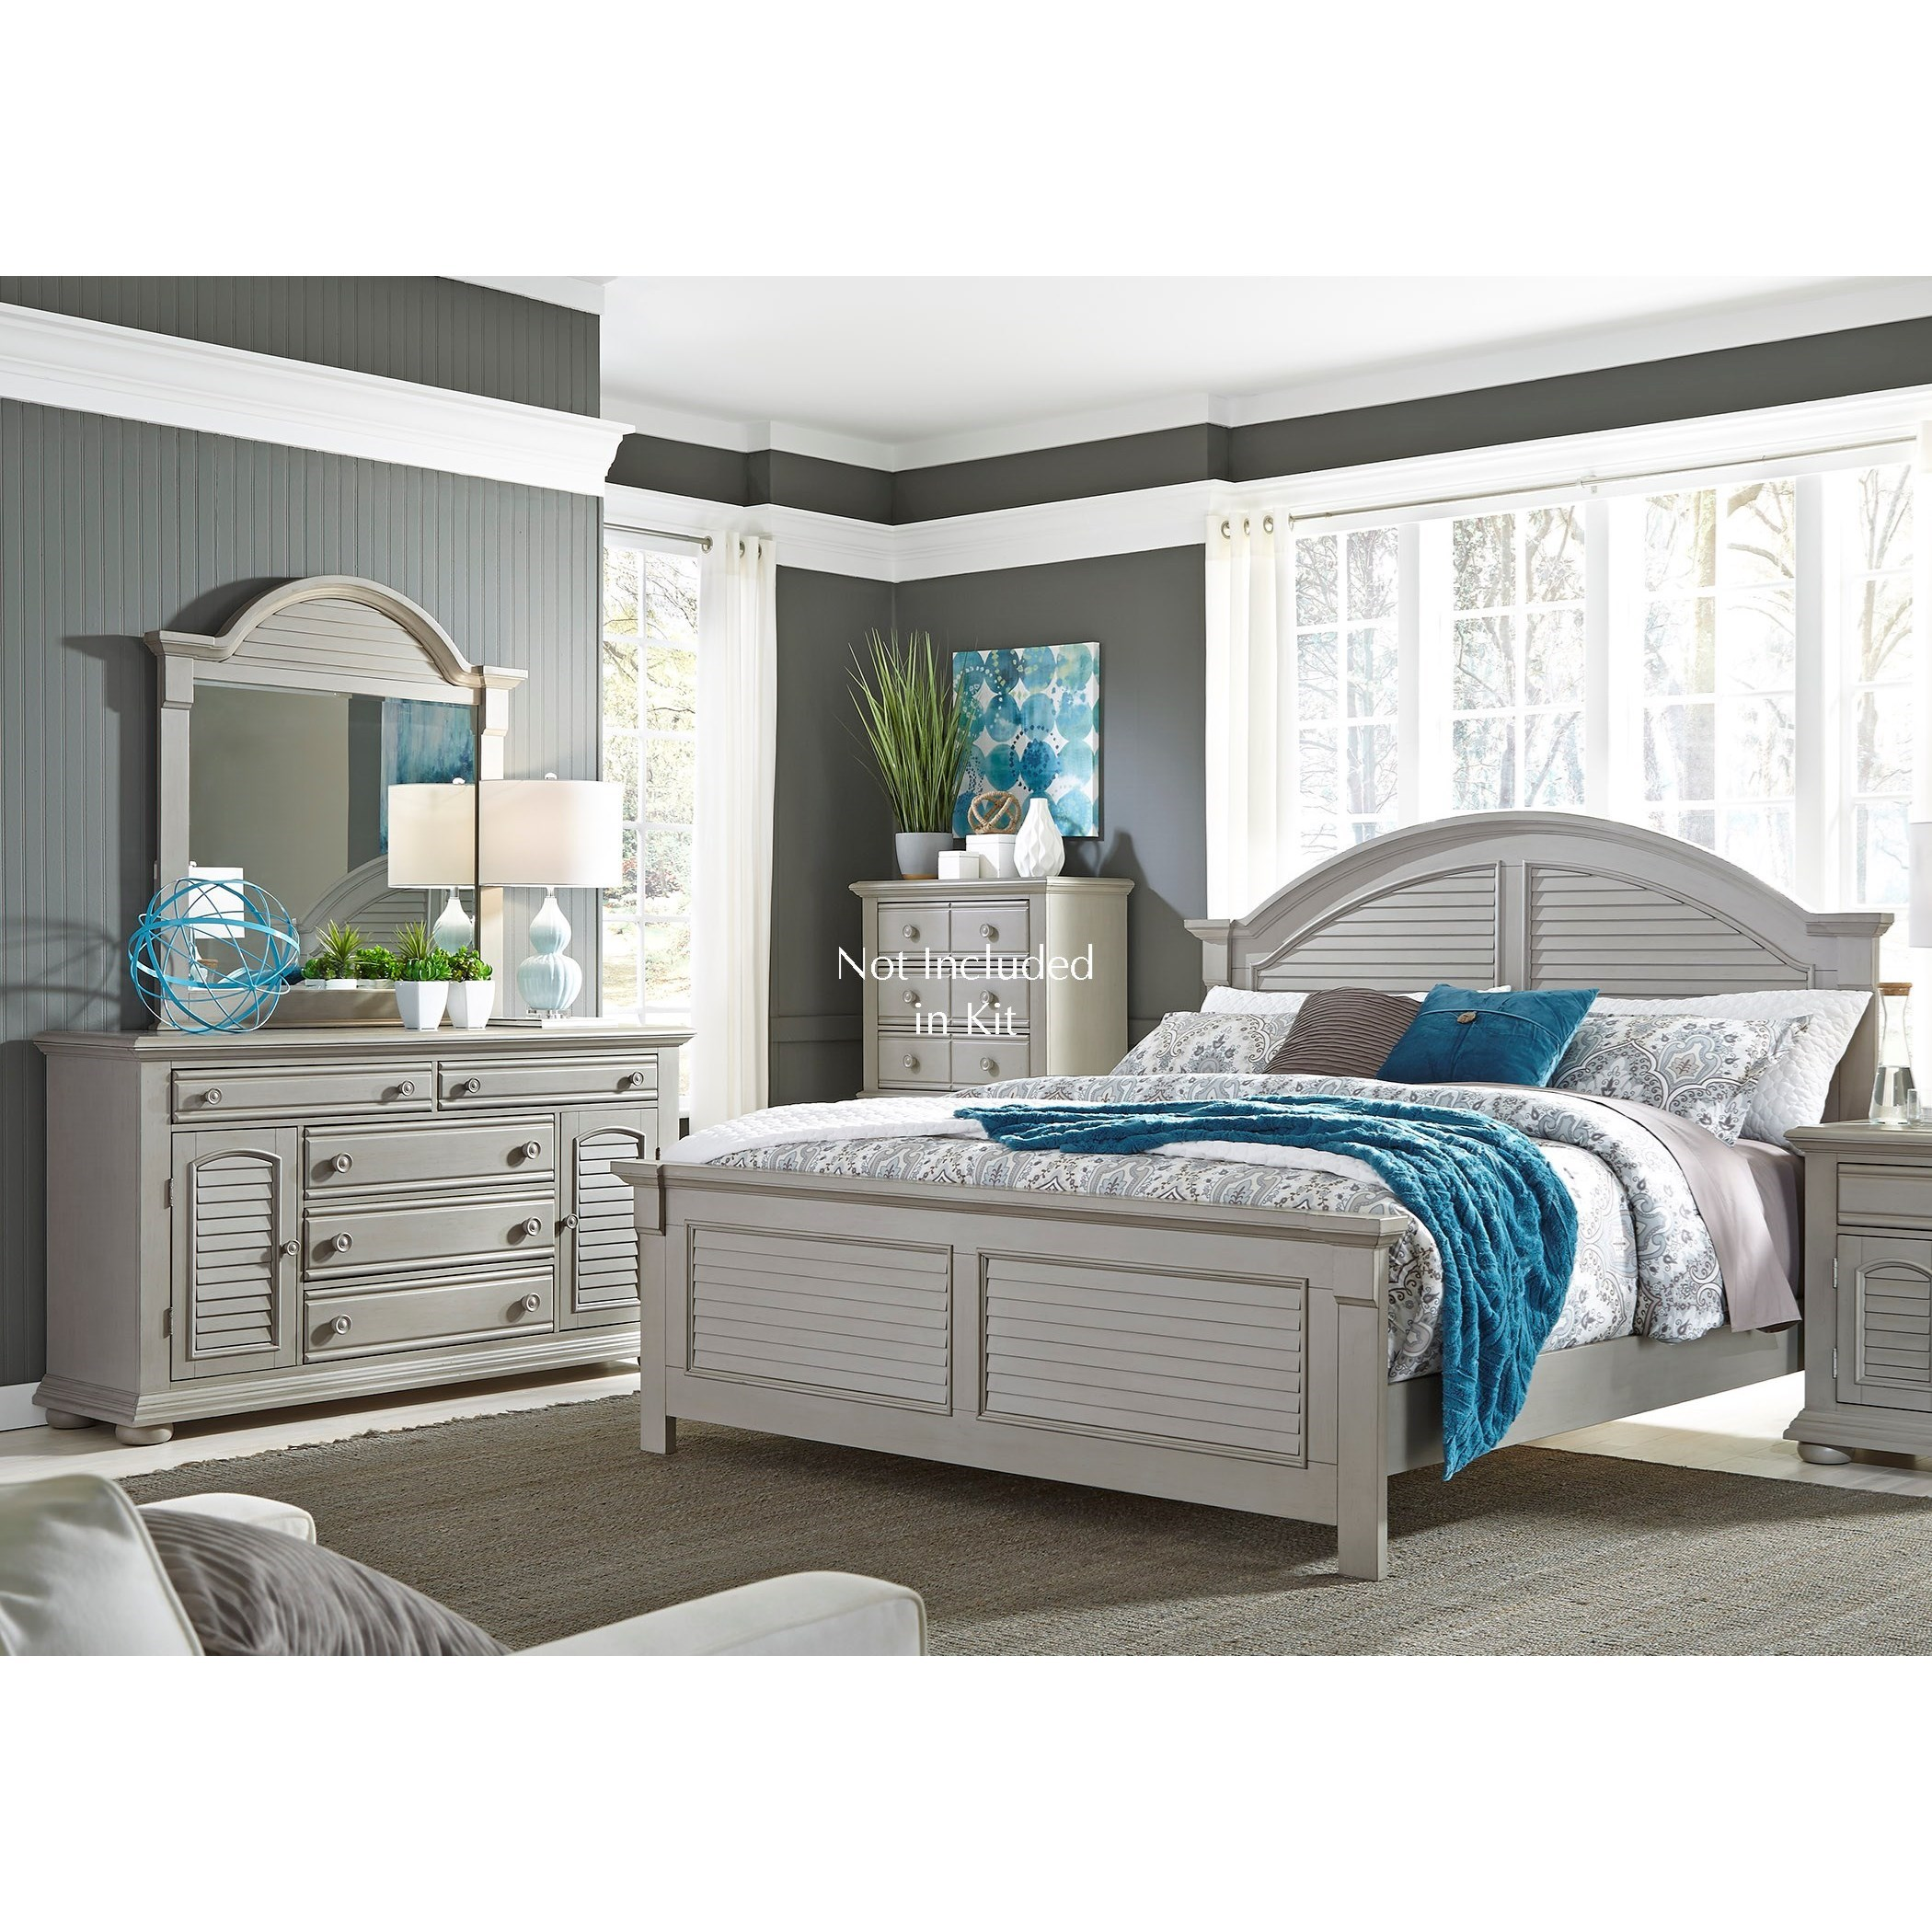 furniture grandpa dresser dm mirror number and liberty drawer ybr cabin products s item casual